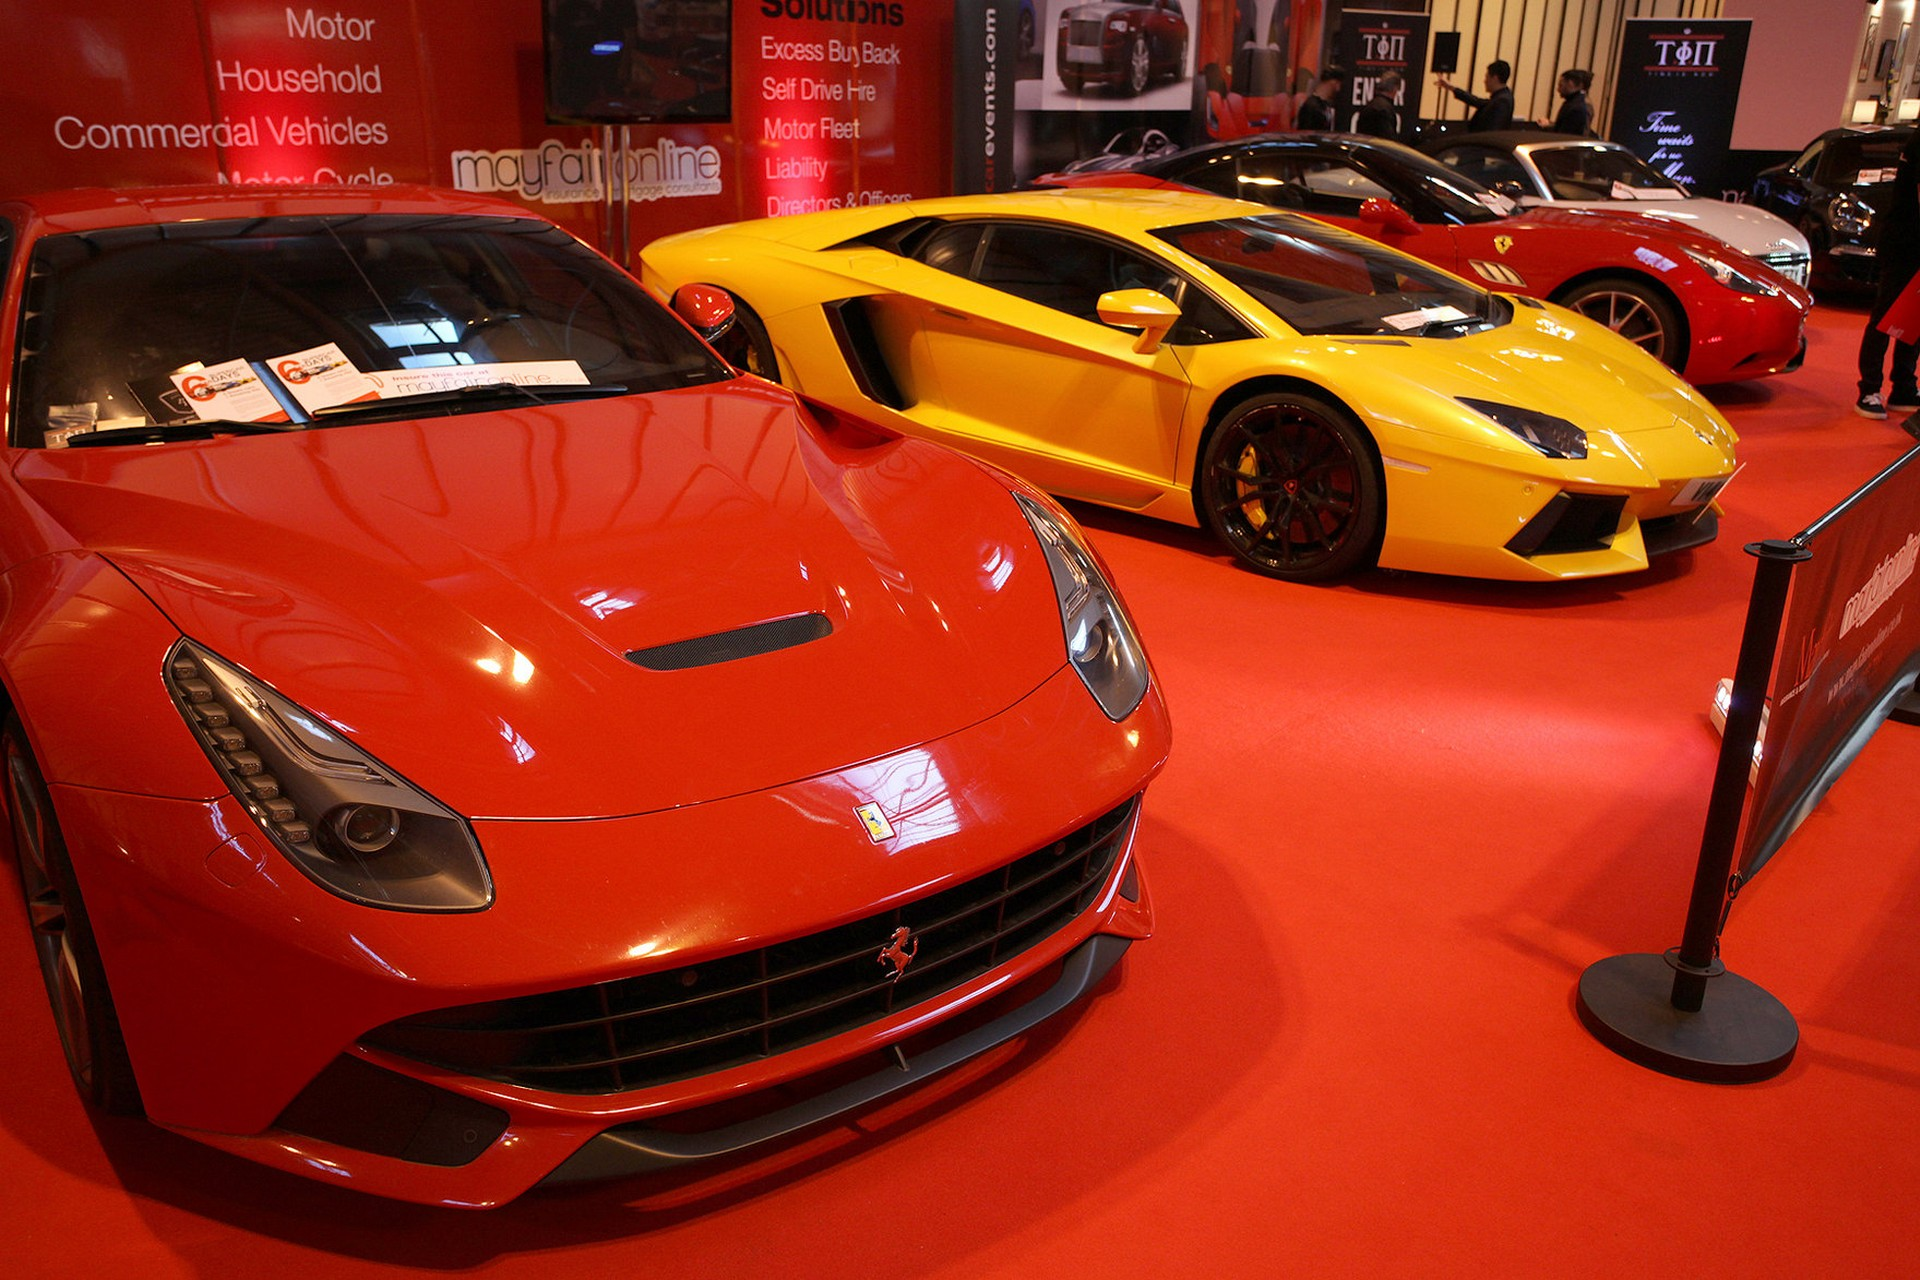 Car Dealers Birmingham >> Birmingham Racing Car show 2015 - UK / TopCar